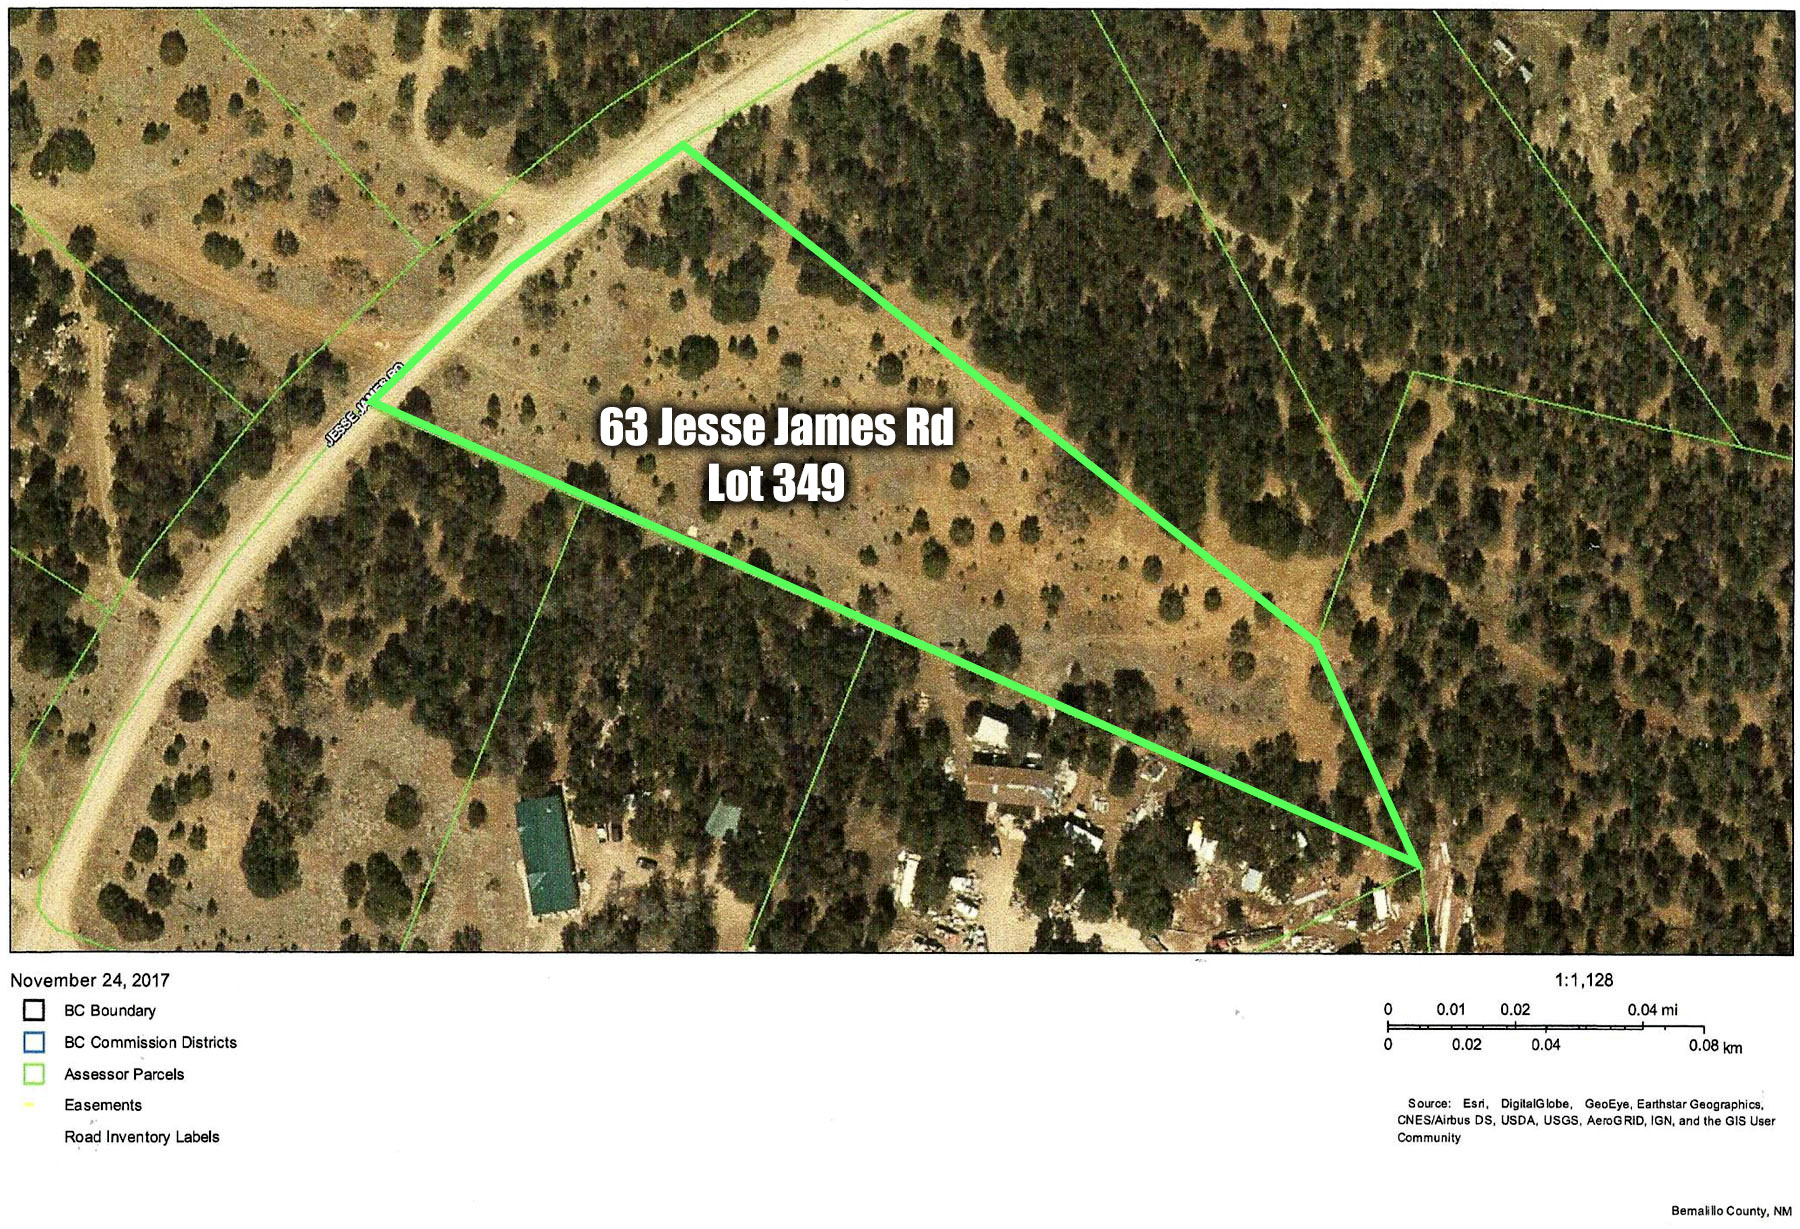 63 Jesse James Rd - Sundance Mountain Ranches